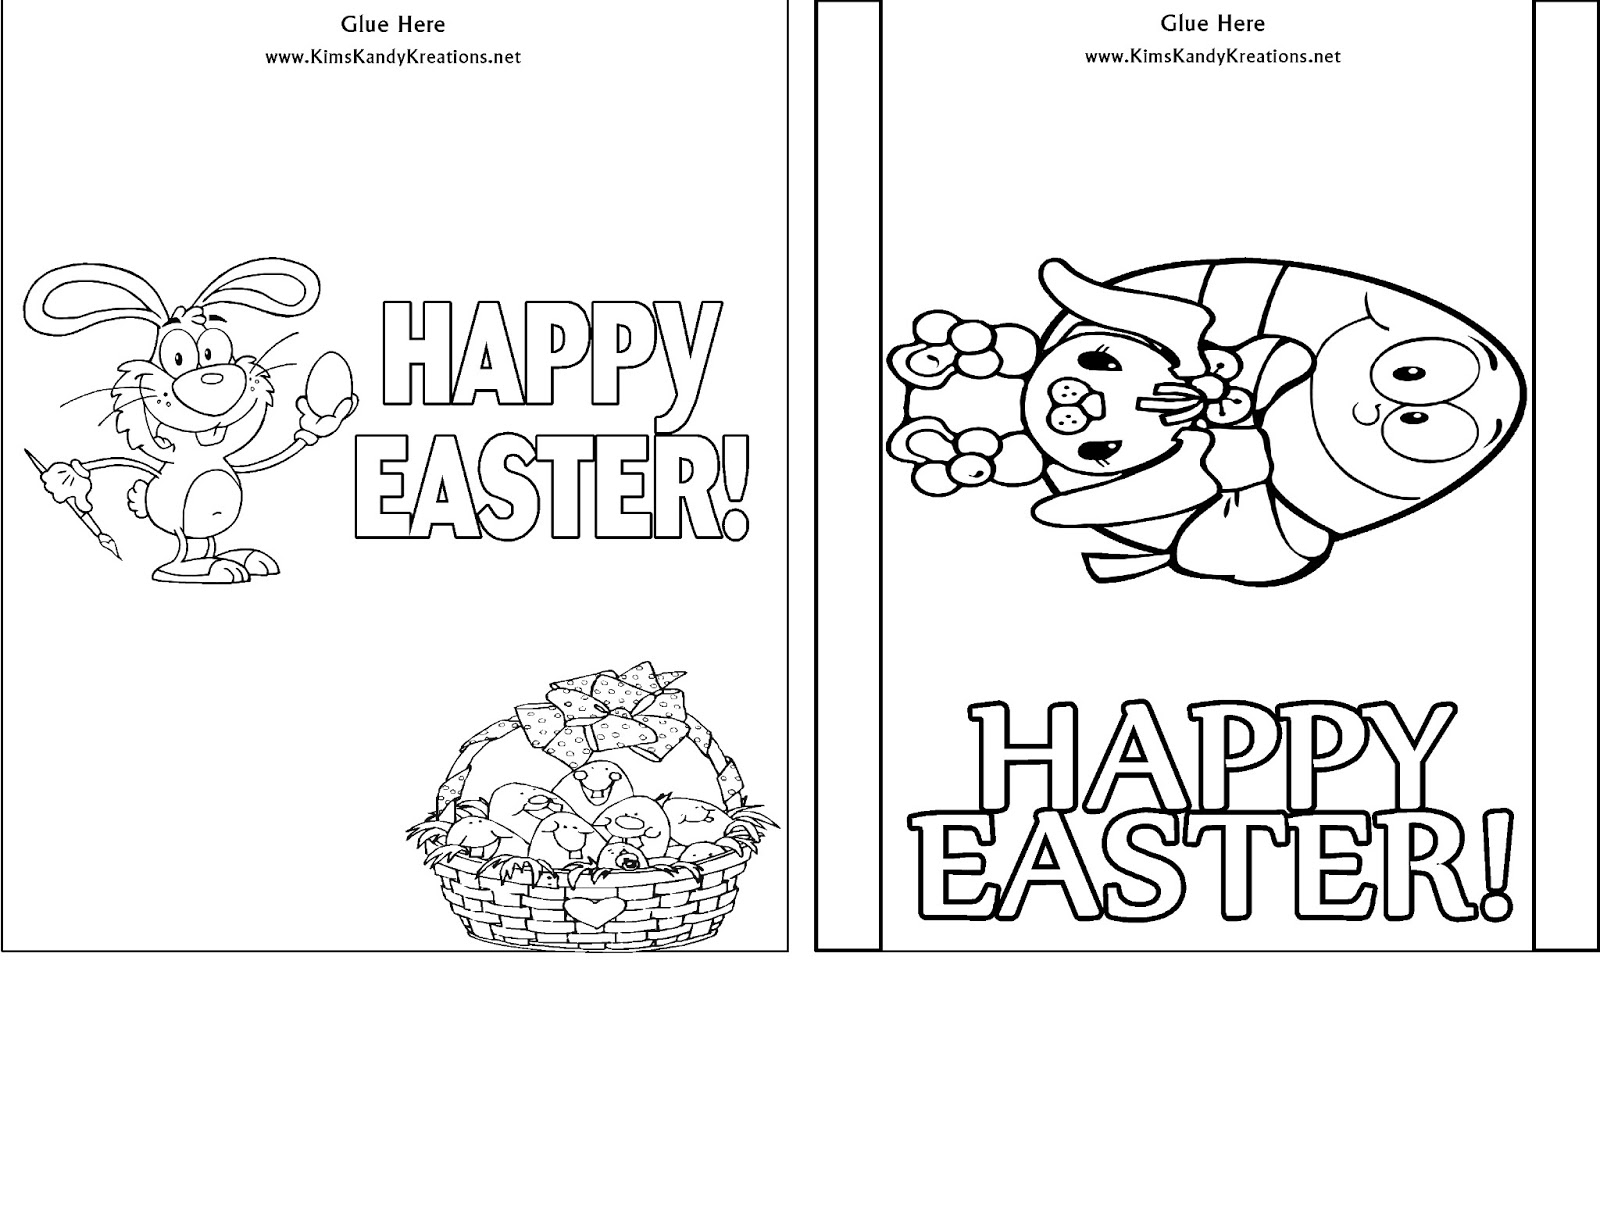 hersheys coloring pages - photo#14